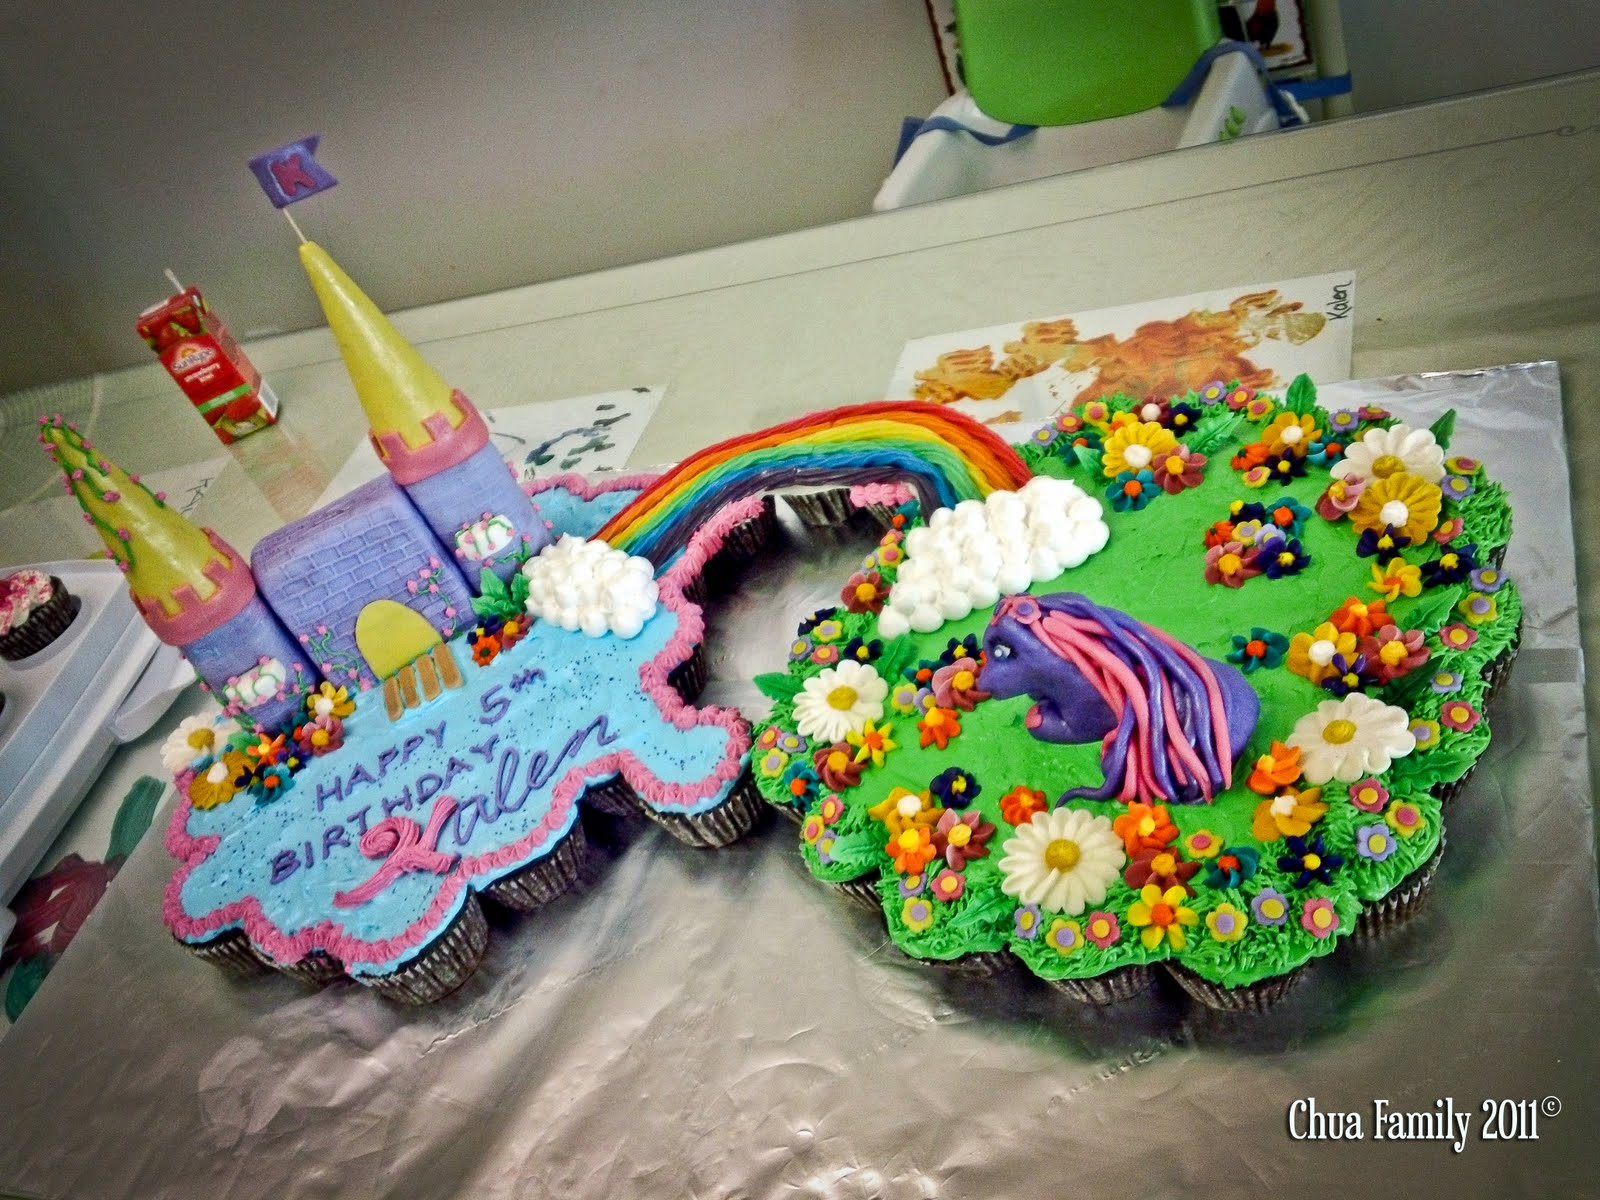 my Little Pony Friendship is Magic Cake my Little Pony 5th Magical